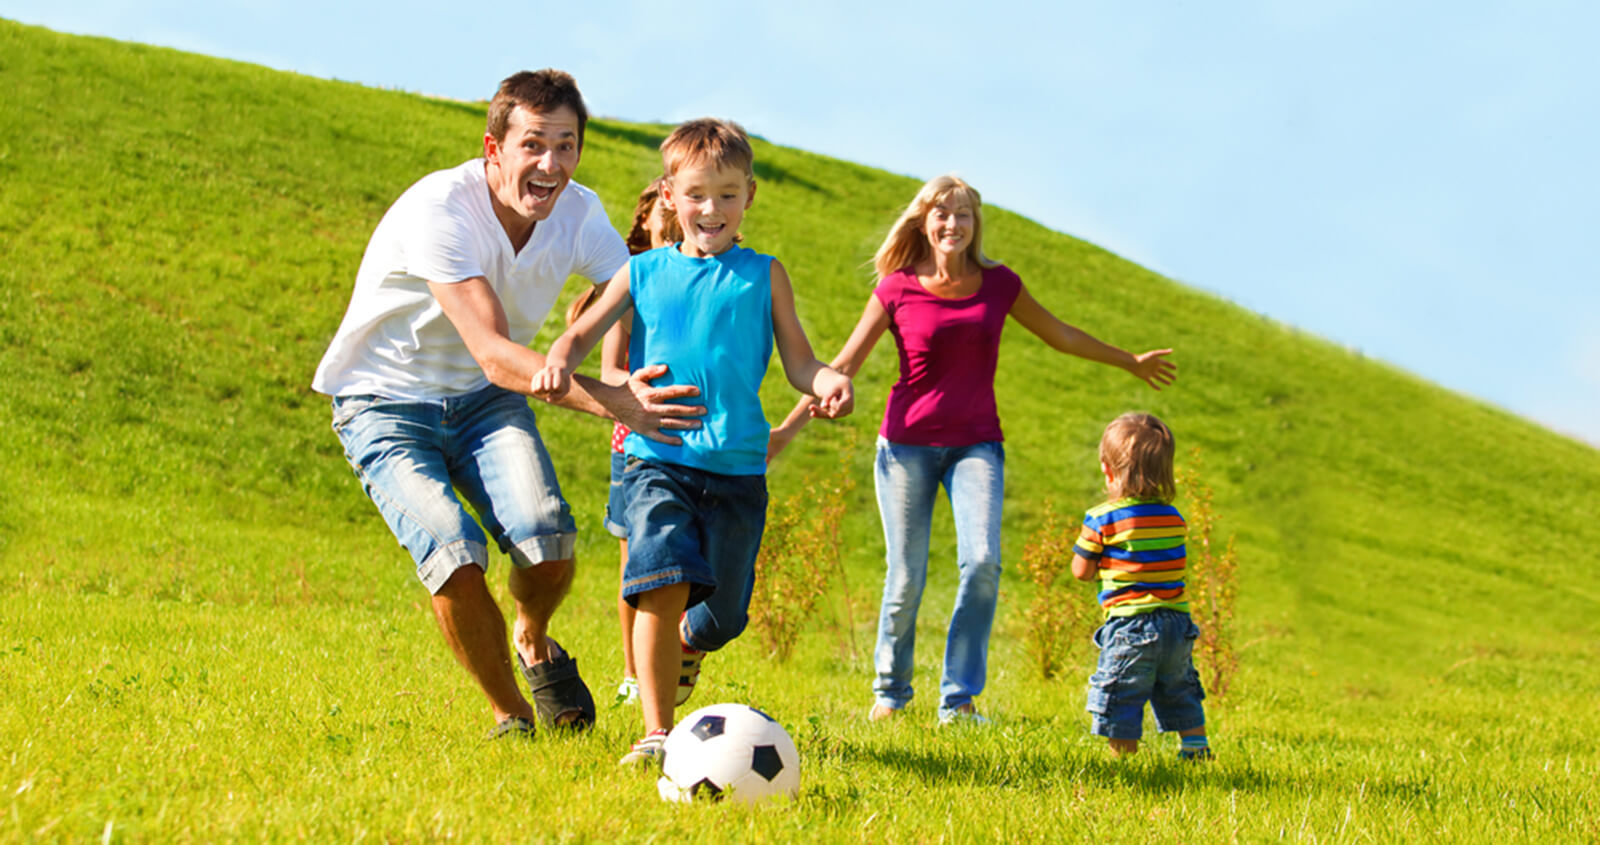 Family dental care available with your dentist at Santa Rosa, CA